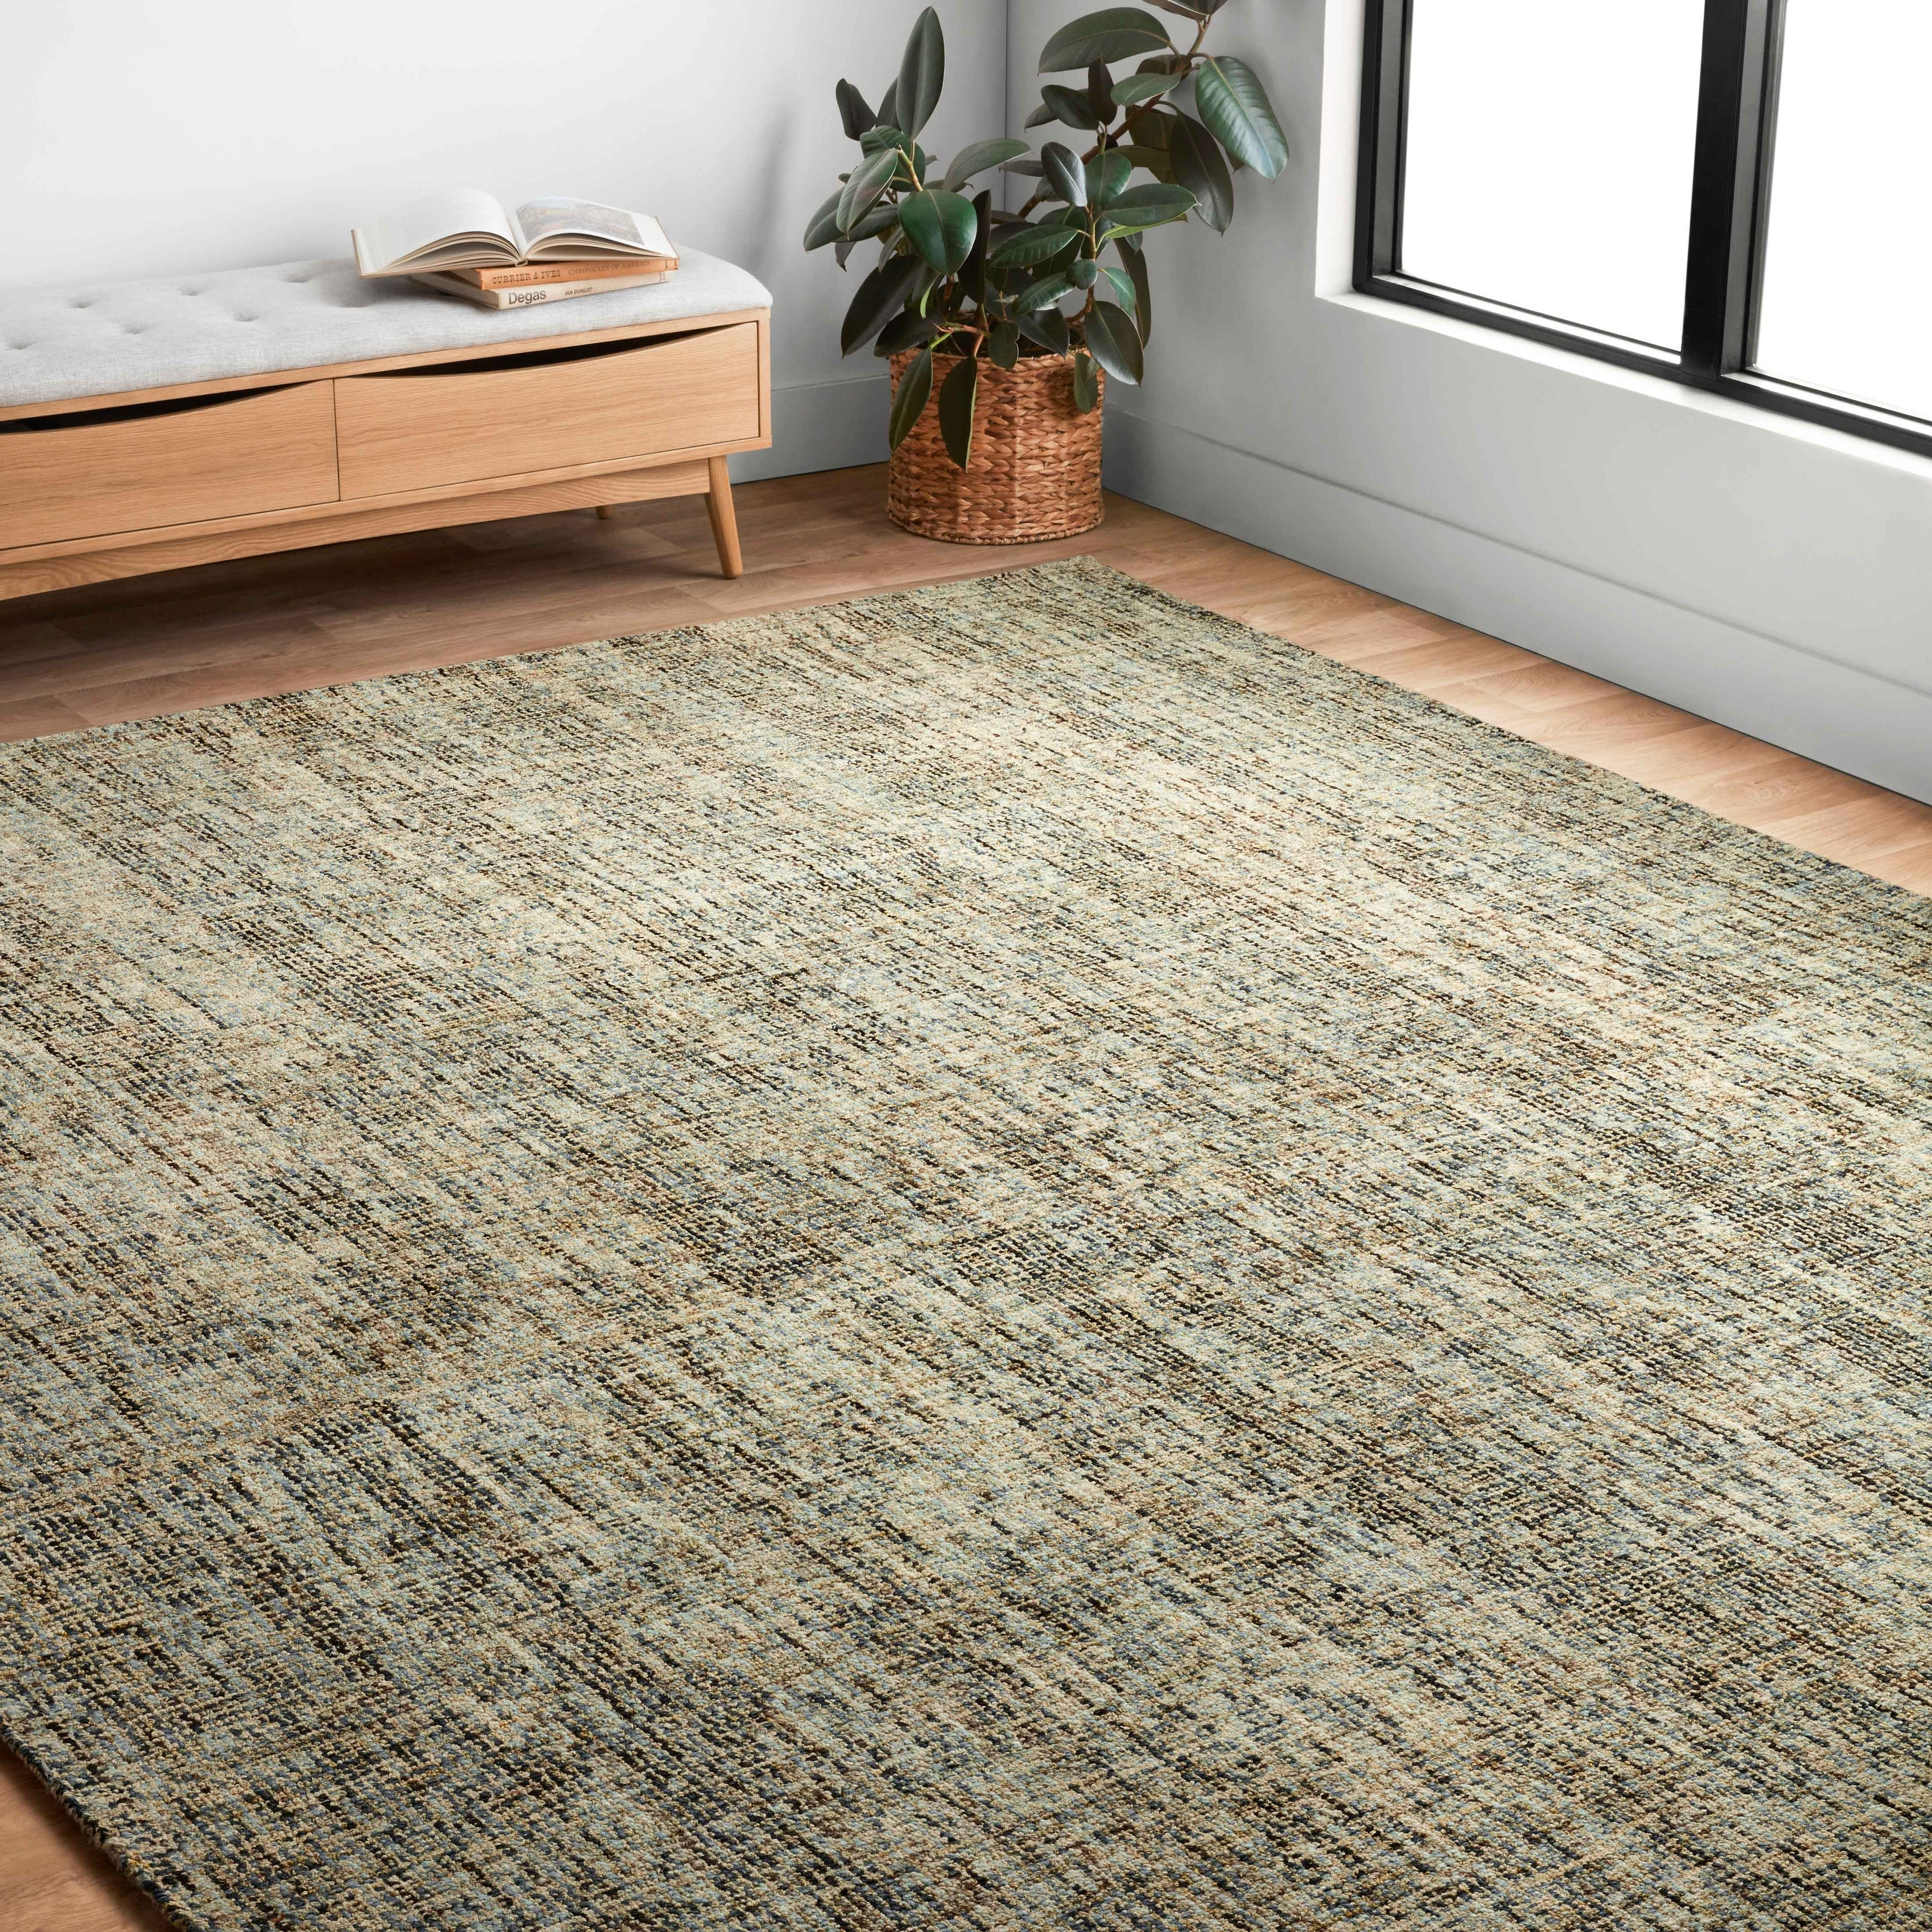 Alexander Home Sandstone Abstract Contemporary Rug Overstock 30920015